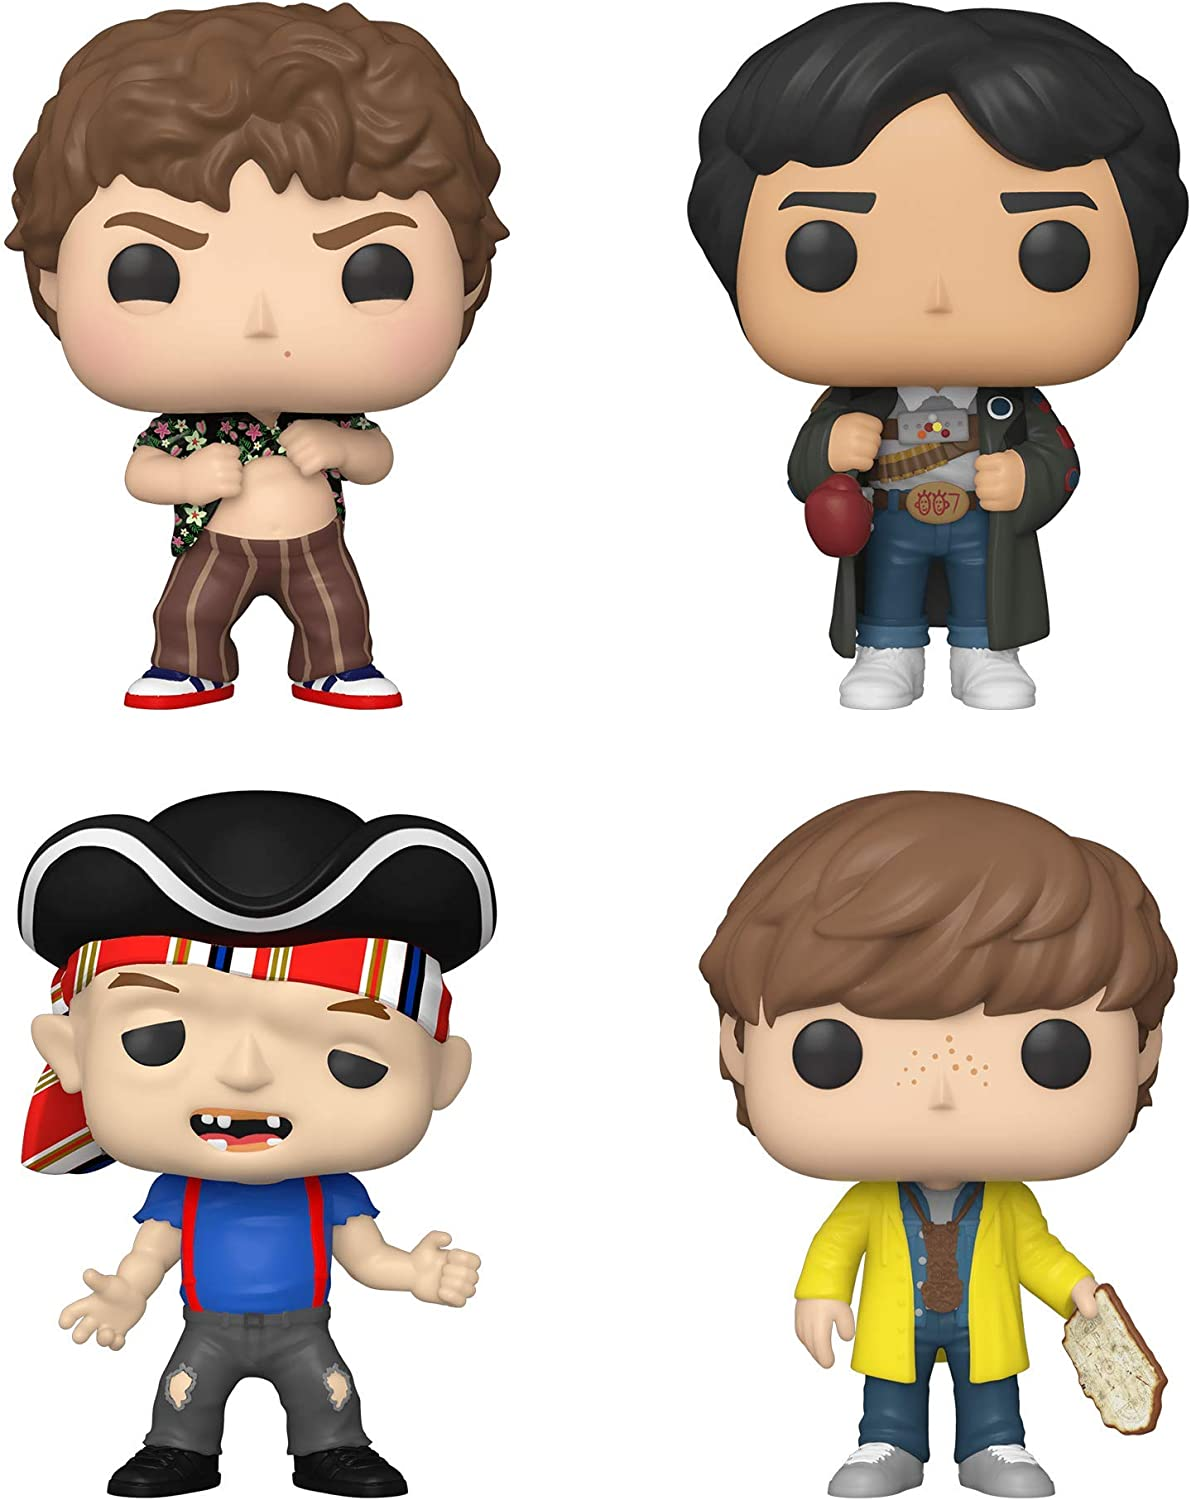 Funko Pop The Goonies Set of 4: Chunk Mikey D SEAL limited product Free Shipping Cheap Bargain Gift and Sloth w Map